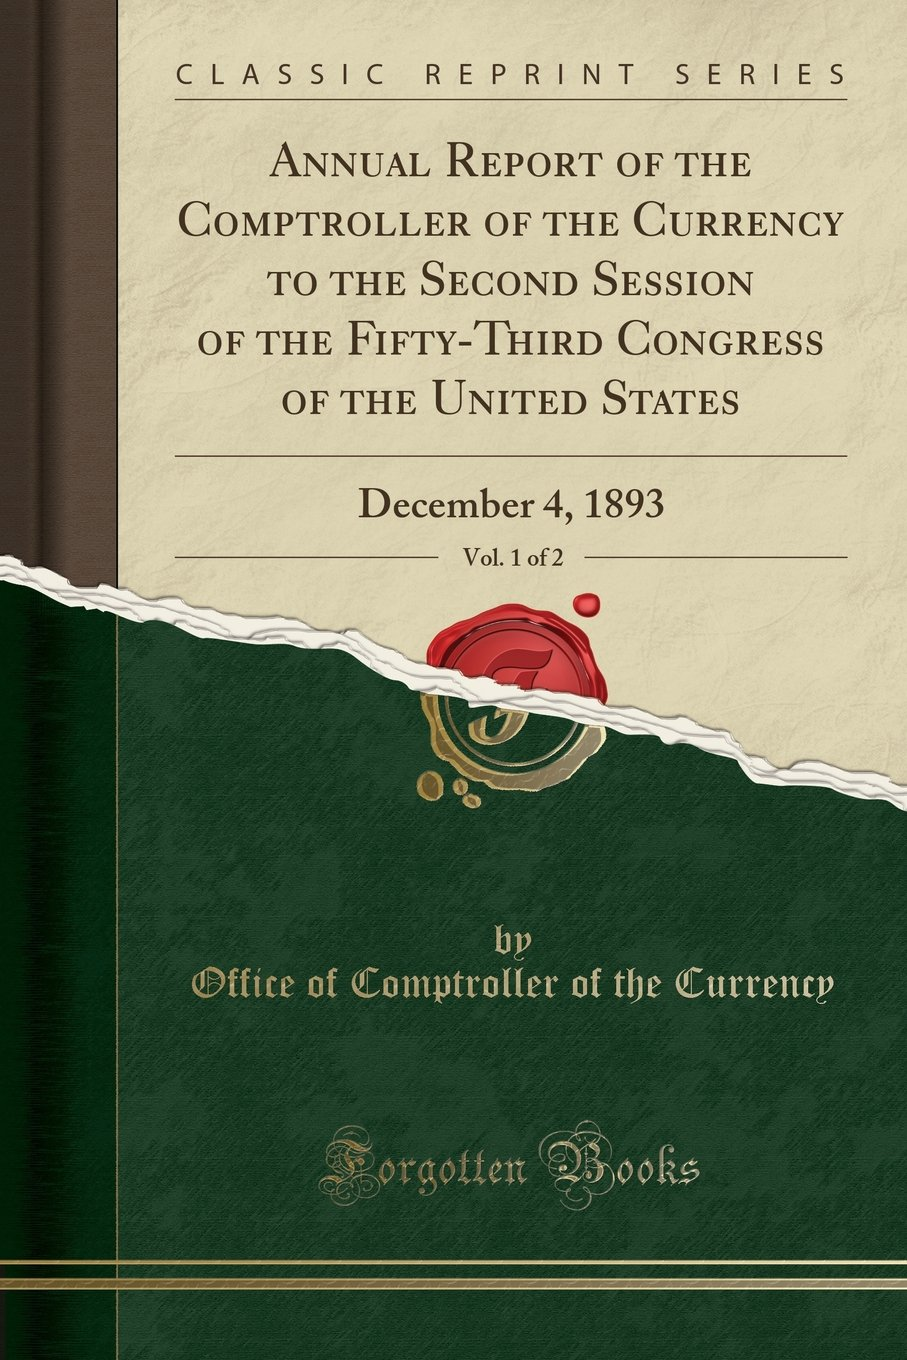 Download Annual Report of the Comptroller of the Currency to the Second Session of the Fifty-Third Congress of the United States, Vol. 1 of 2: December 4, 1893 (Classic Reprint) pdf epub